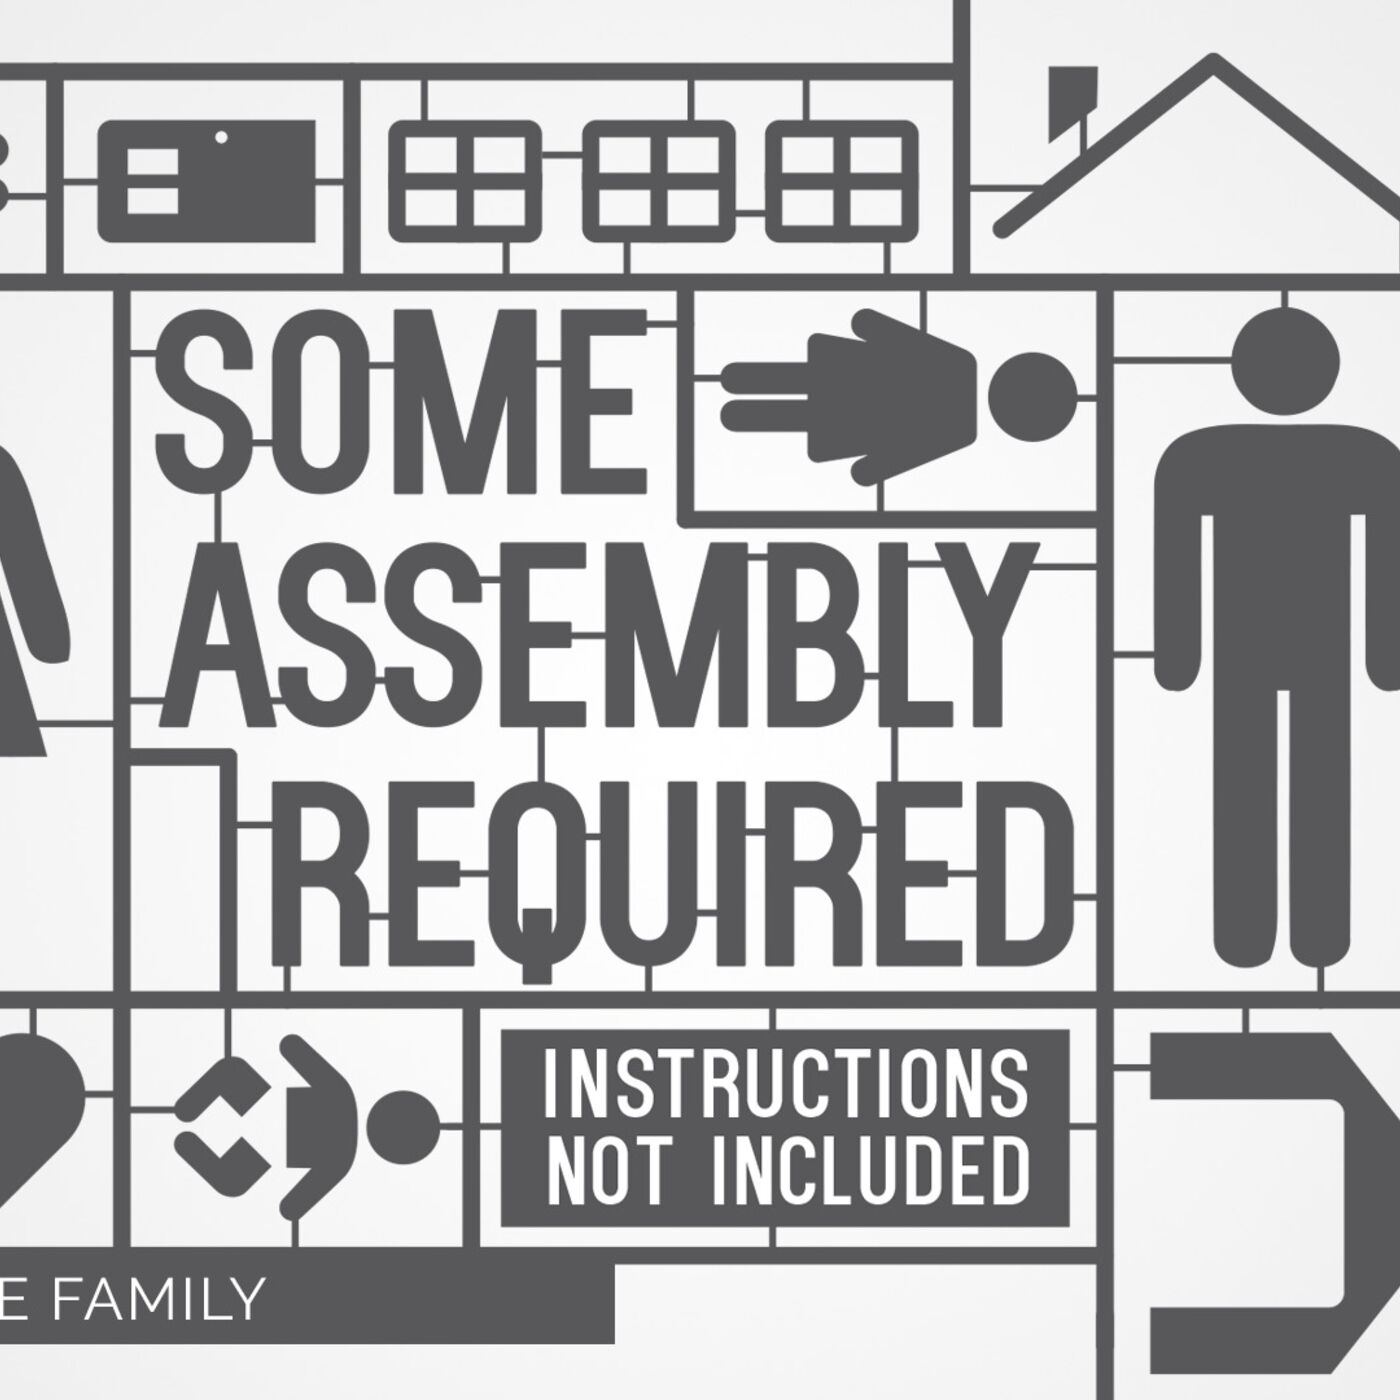 Some Assembly Required Week 4